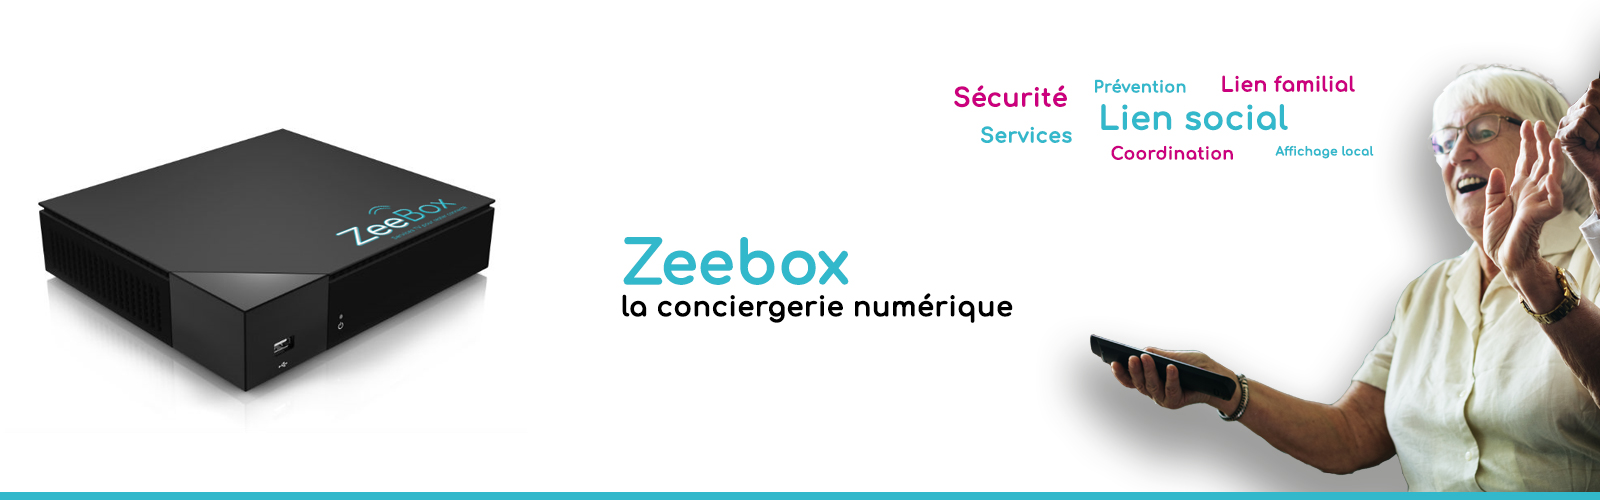 zeebox-conciergerie-services-prevention-numerique-5